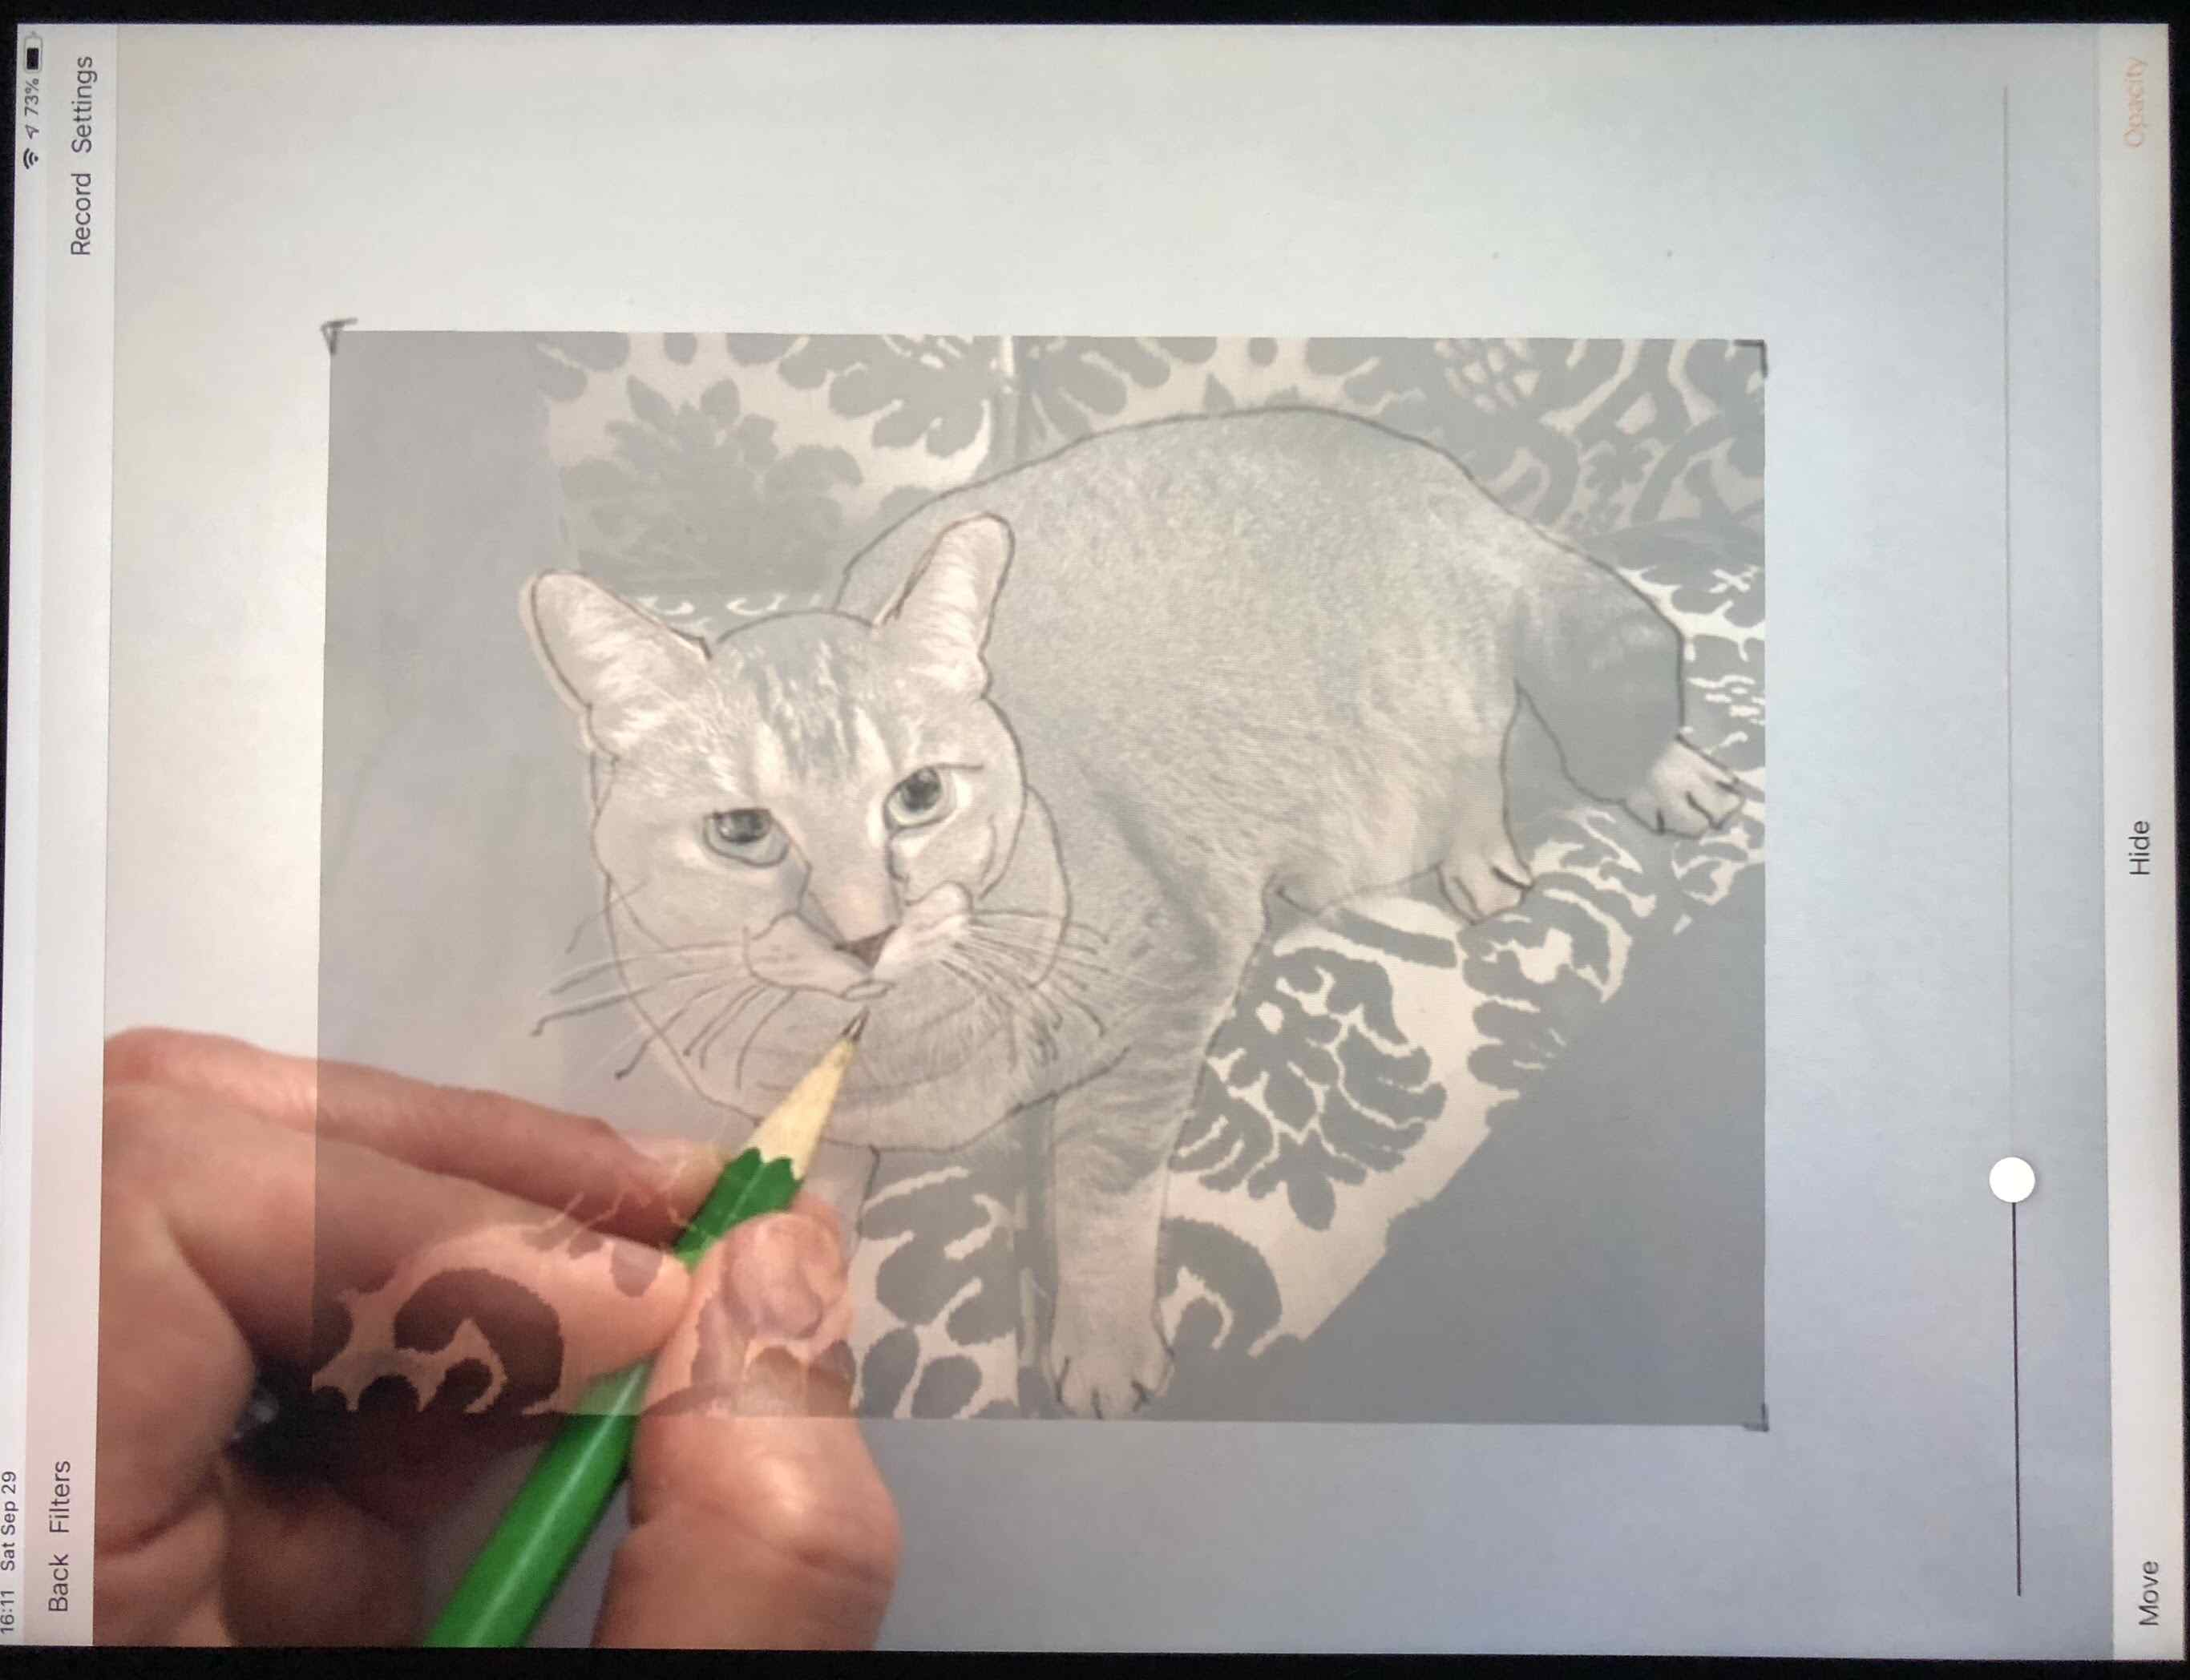 Photo of Da Vinci app, showing a photo of cat on iPad screen, with paper and hand with pencil below, drawing the cat